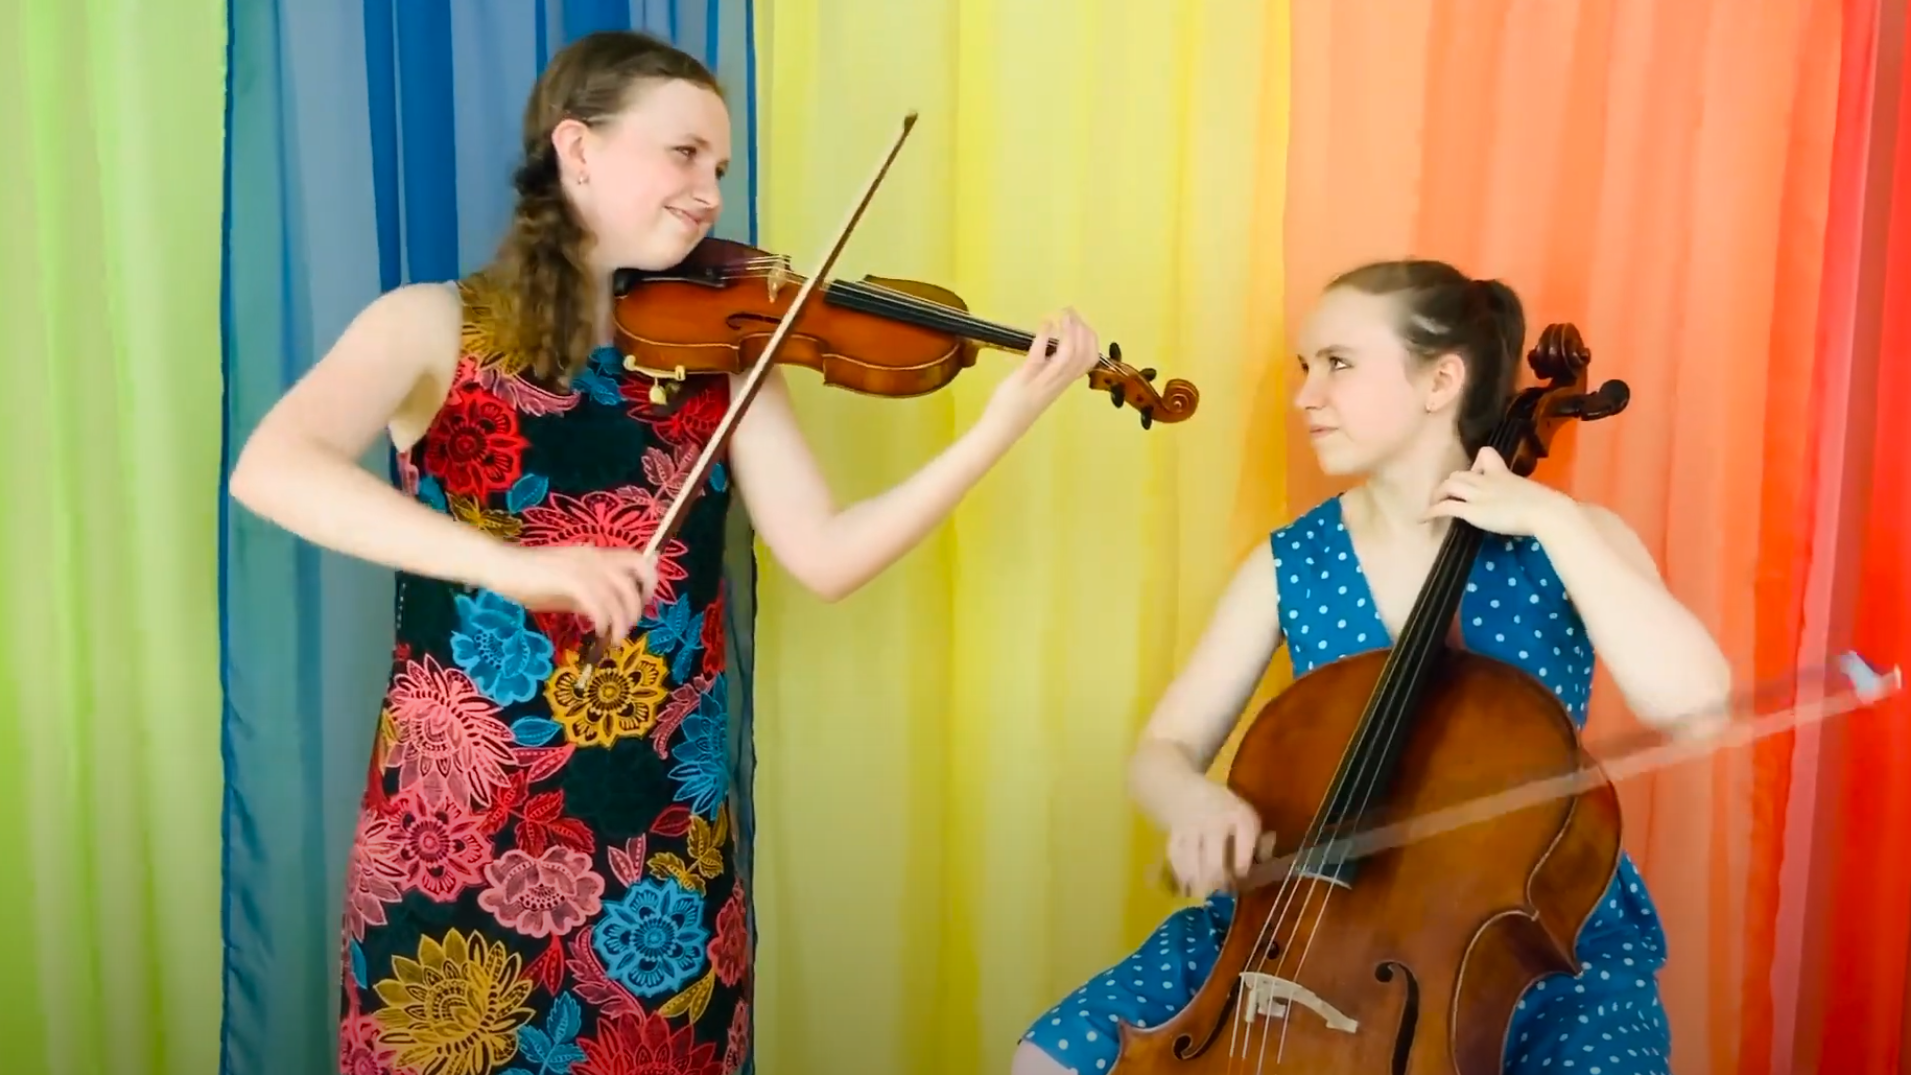 Violinist Charlotte and cellist Olivia Marckx wearing colorful dresses performing against a rainbow backdrop